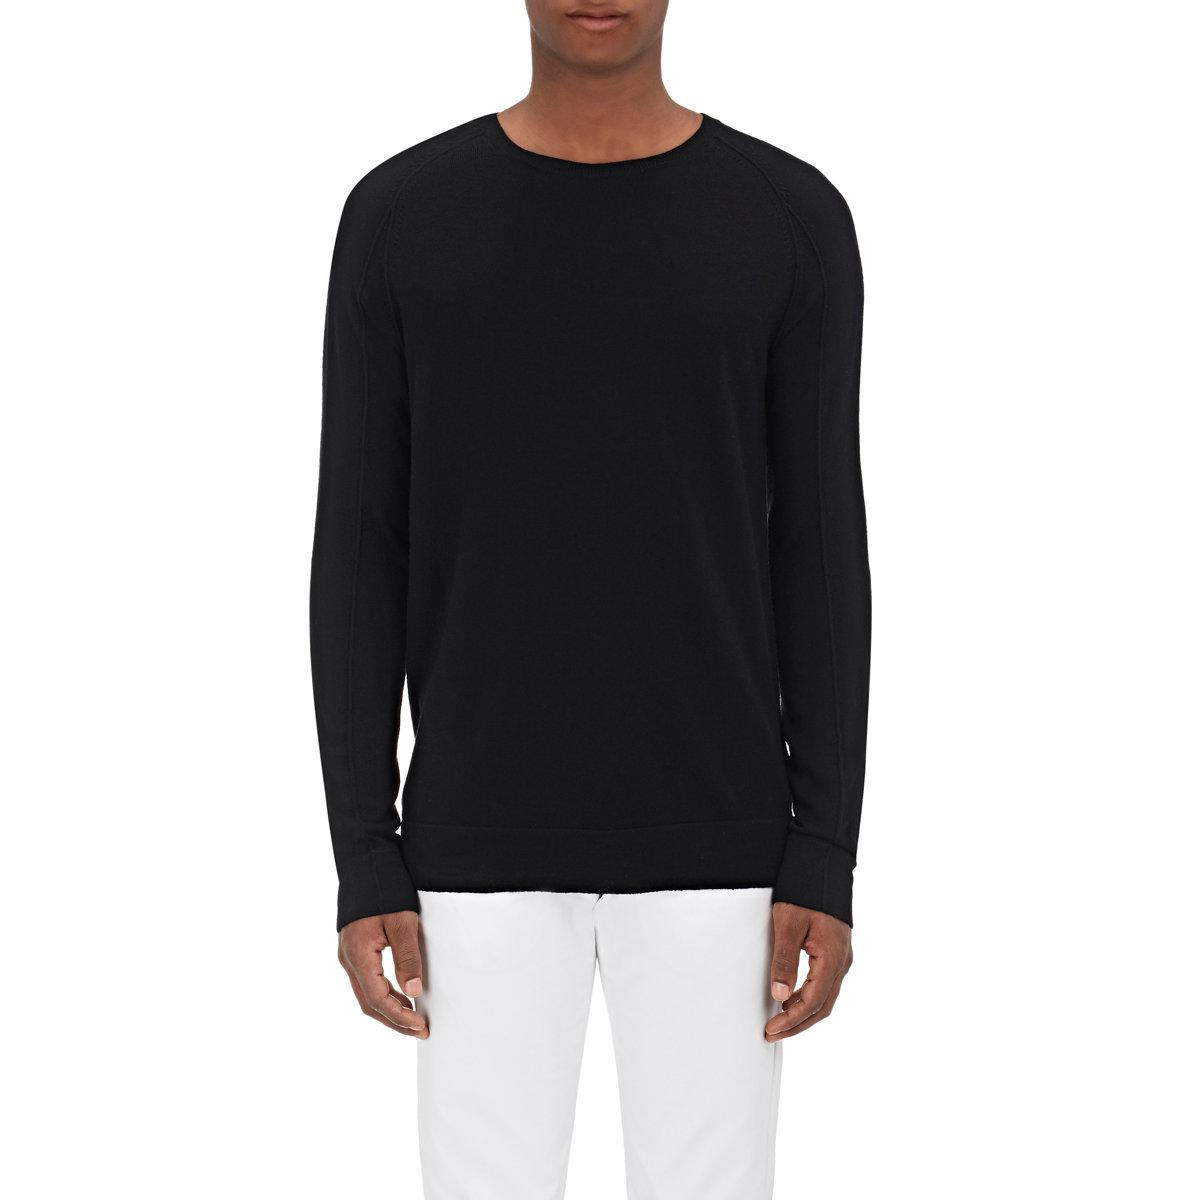 Free Shipping Huge Surprise Wool knit pull with round neck Helmut Lang Cheap Sale Classic 2018 Sale Online Outlet Cheap Latest Collections Online ucj72Jjefm